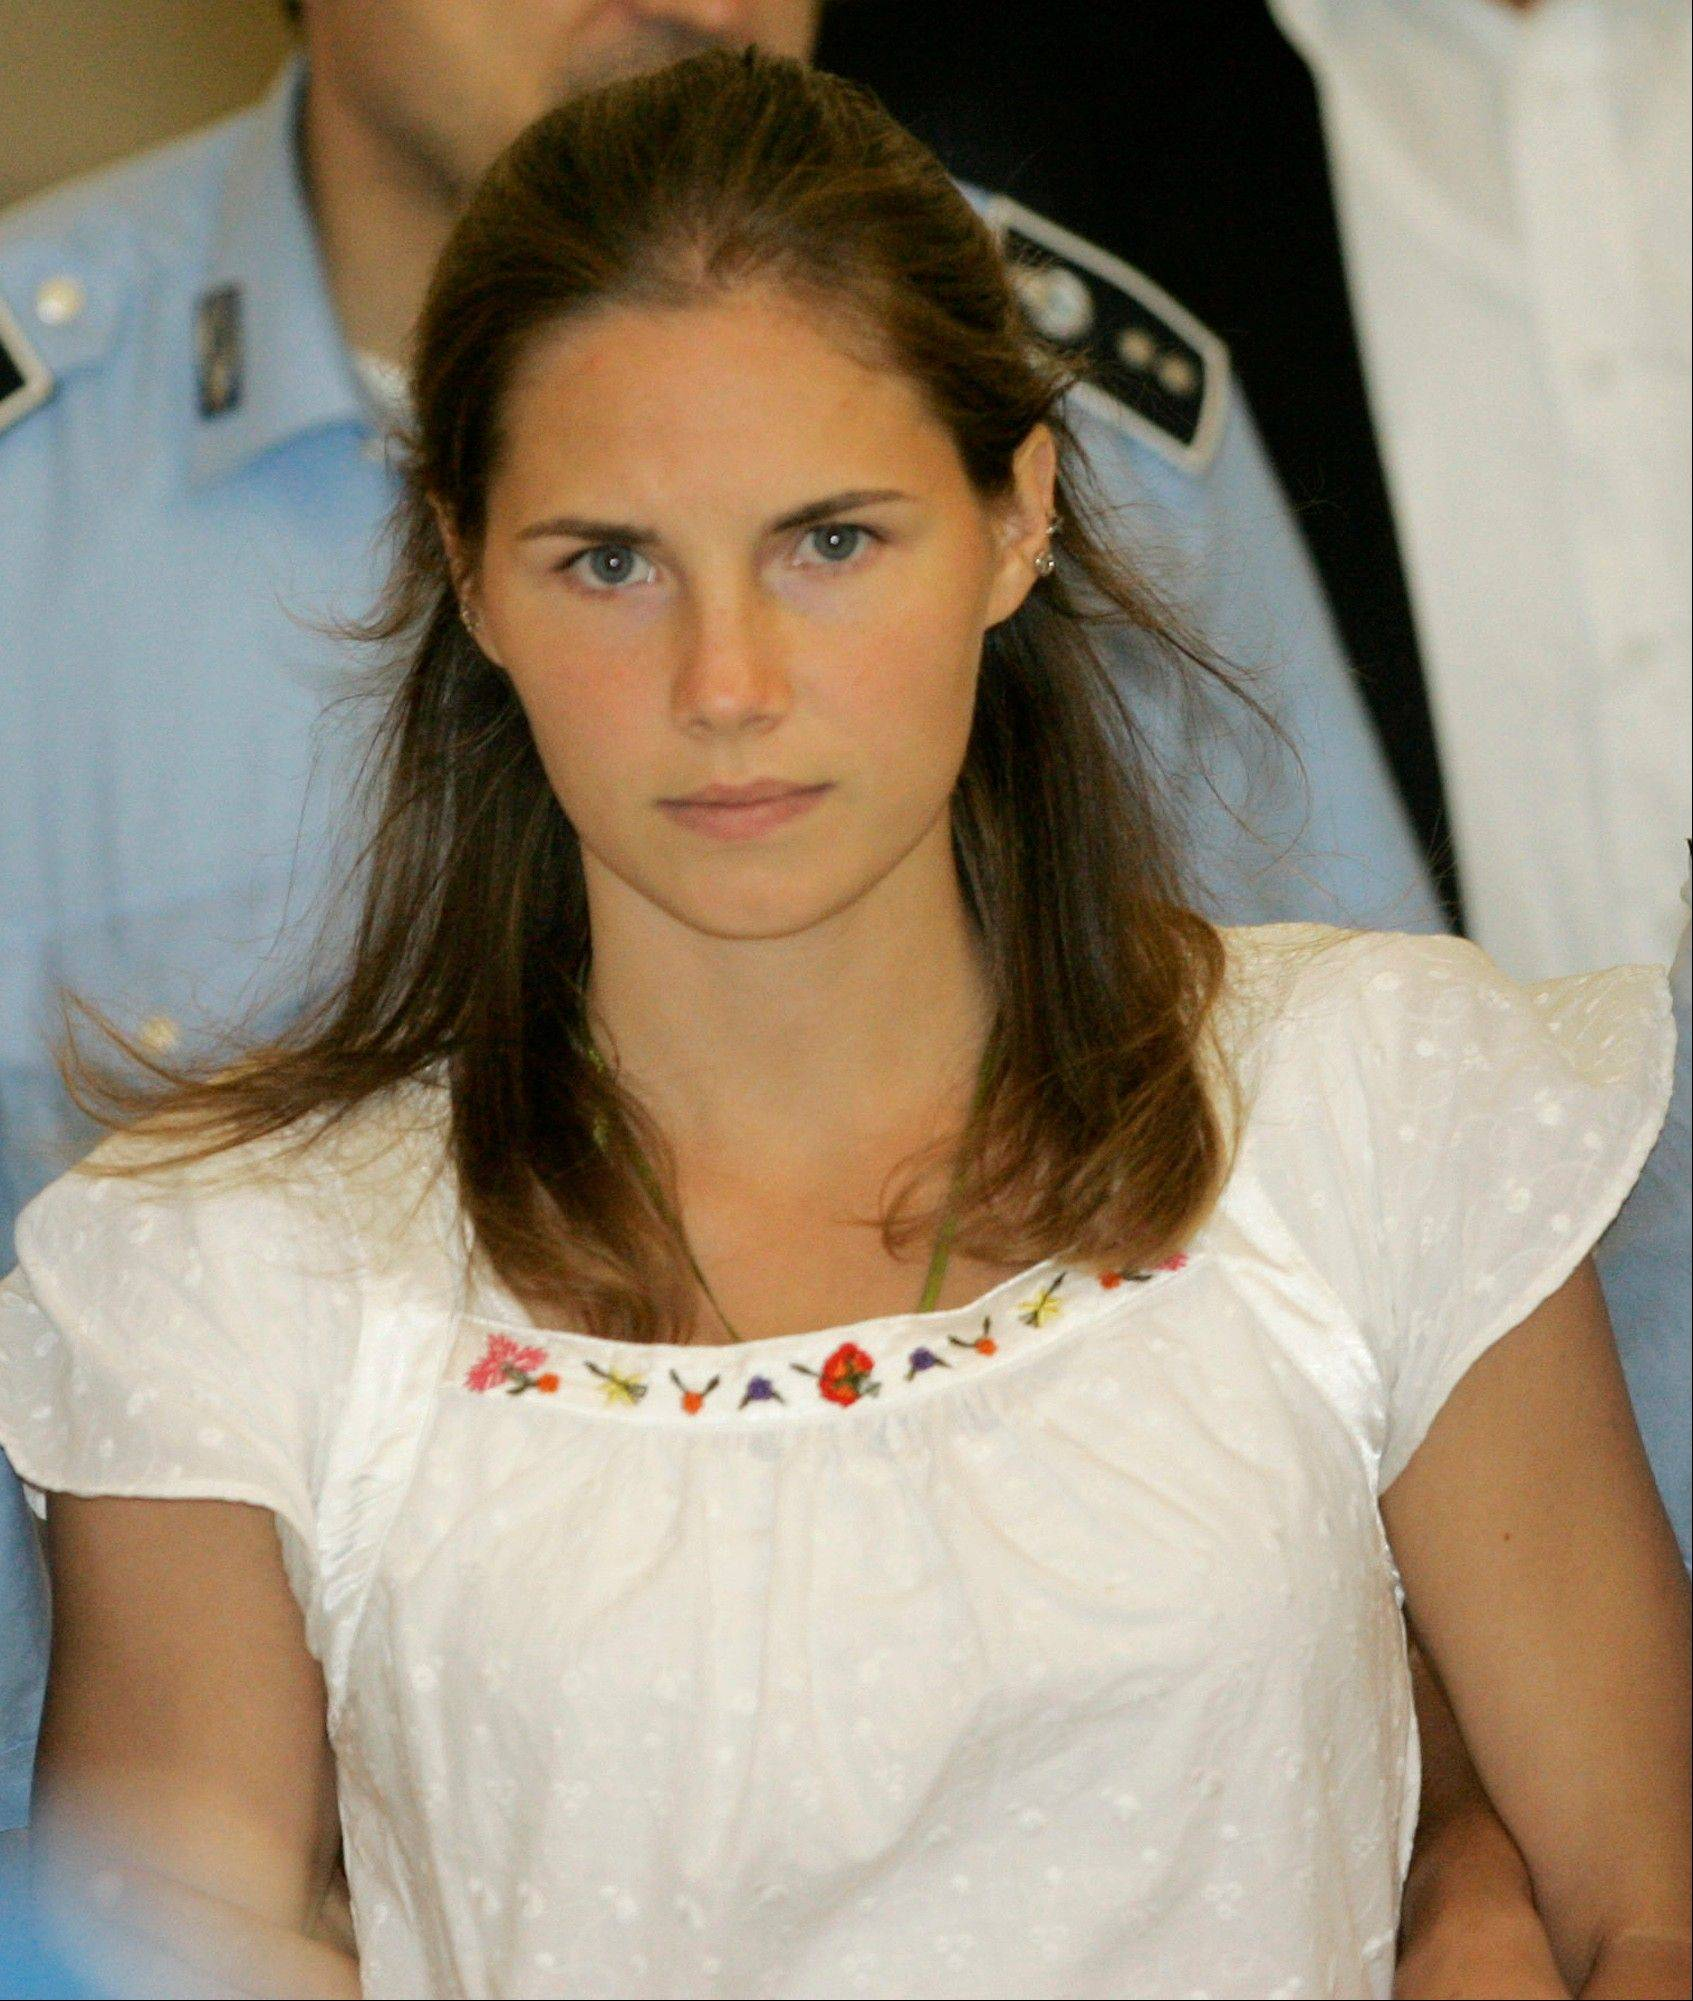 Amanda Knox is to hear on Tuesday whether she will face trial again as Italy's top criminal court considered whether to overturn her acquittal in the murder of her roommate in Italy.